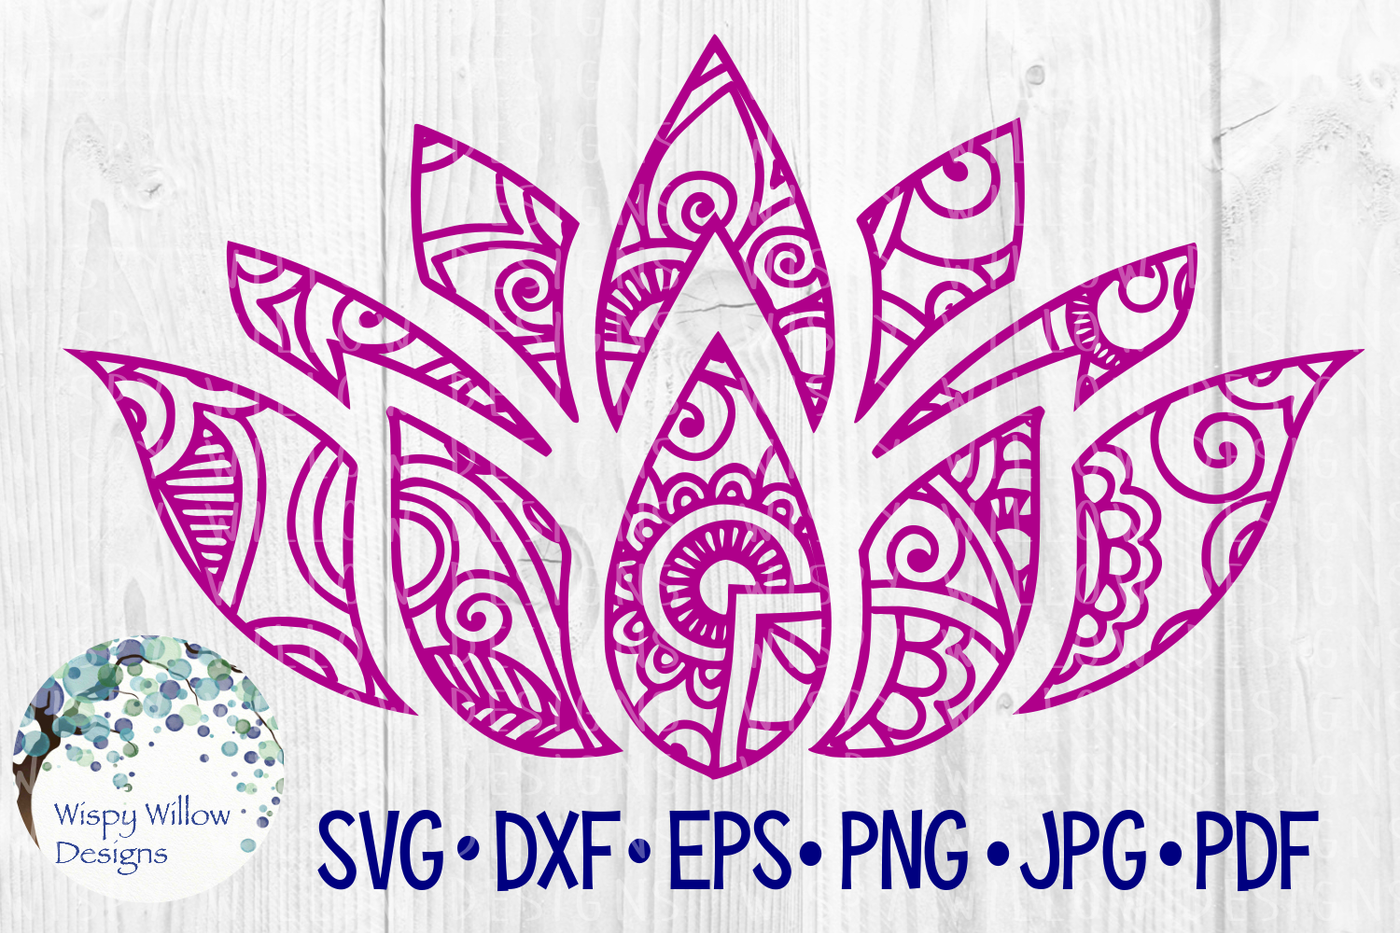 Peace Bundle Buddha Peace Sign Yoga Lotus Svg Dxf Eps Png Jpg